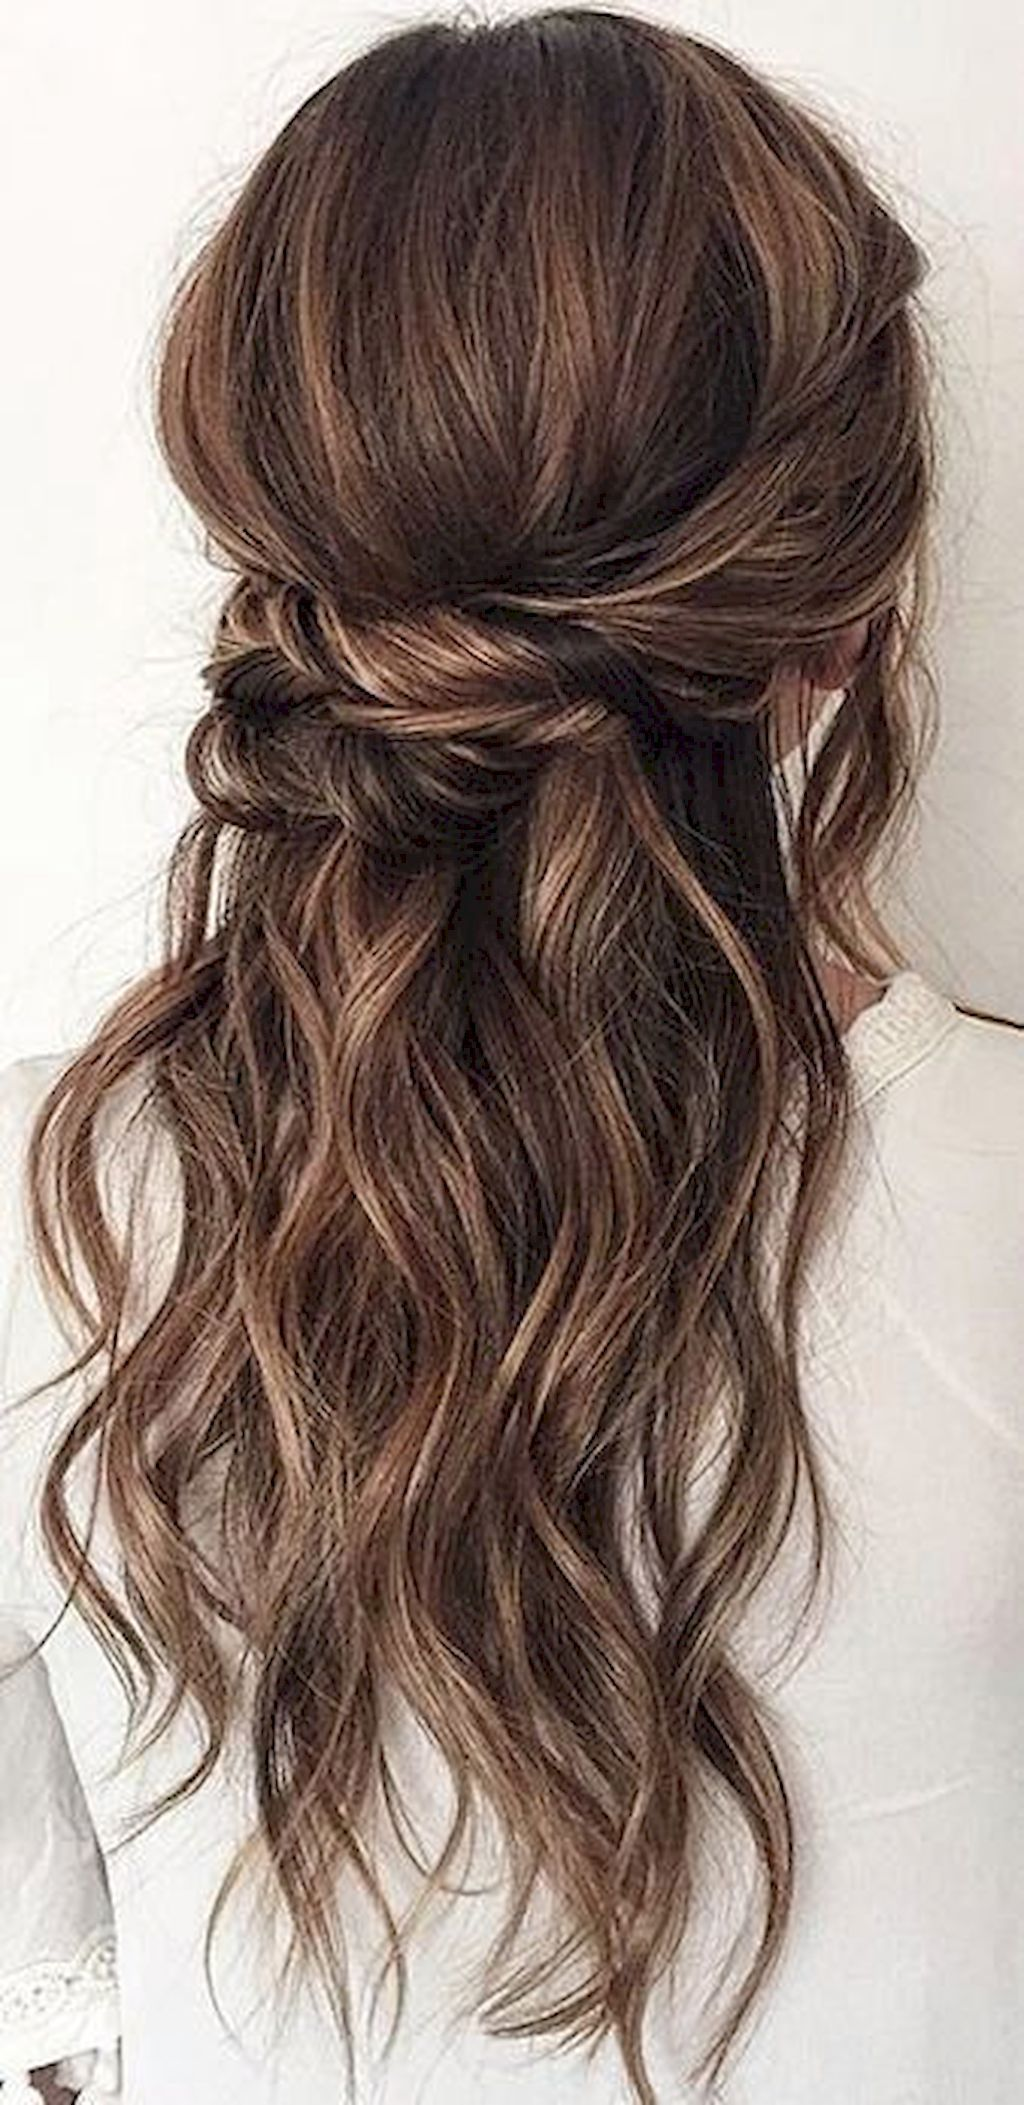 "29 Bridal Wedding Hairstyles For Long Hair that will Inspire<p><a href=""http://www.homeinteriordesign.org/2018/02/short-guide-to-interior-decoration.html"">Short guide to interior decoration</a></p>"